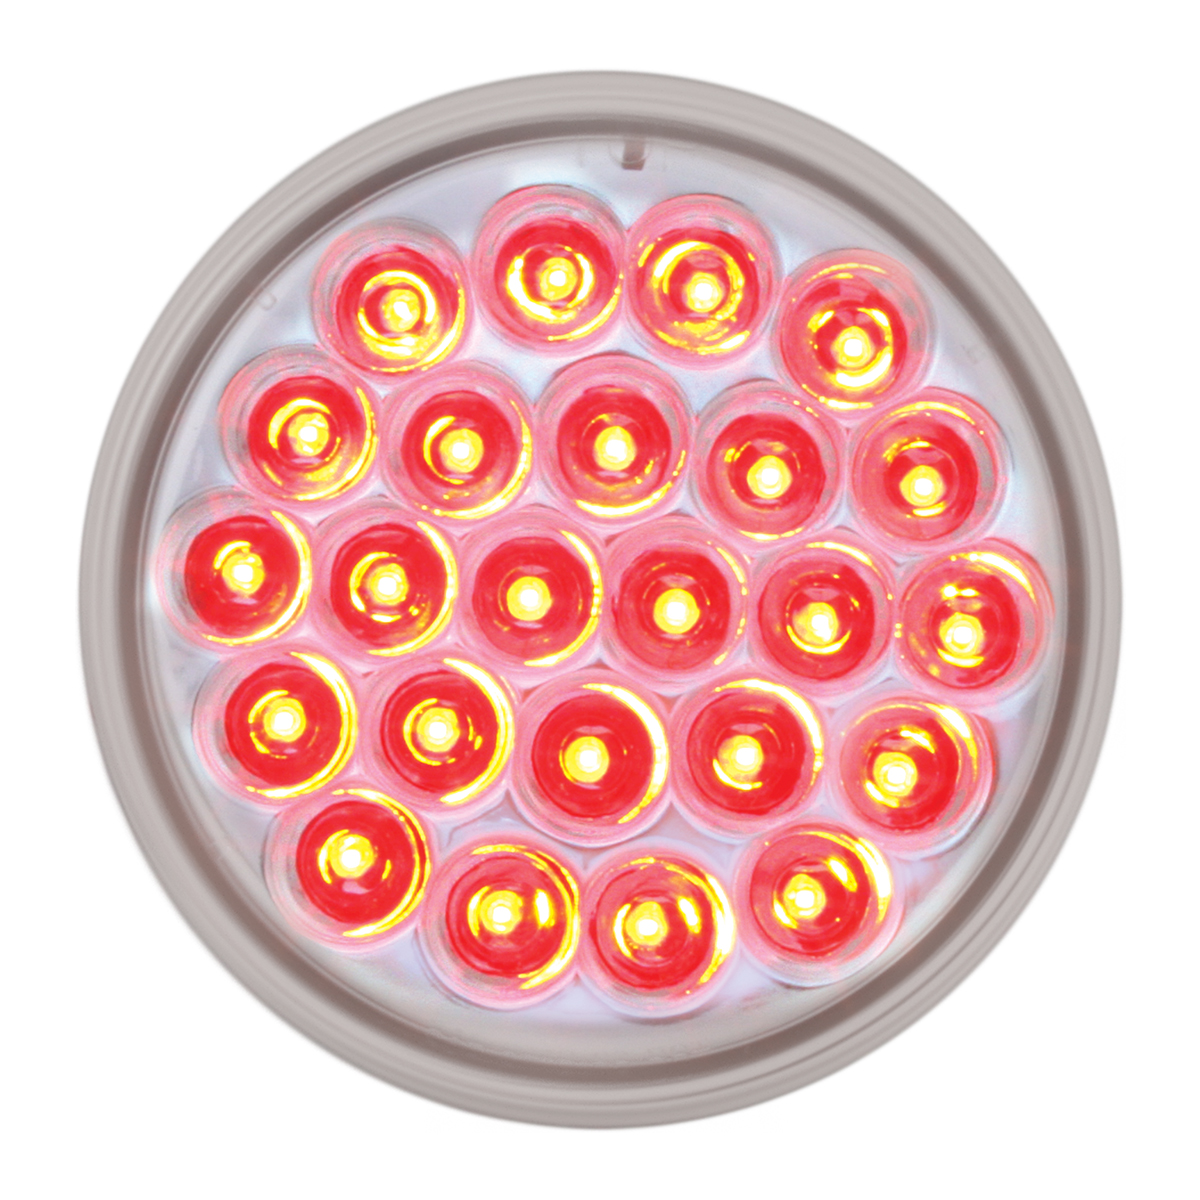 "#78274 4"" Round Pearl LED Flat Red/Red Light"